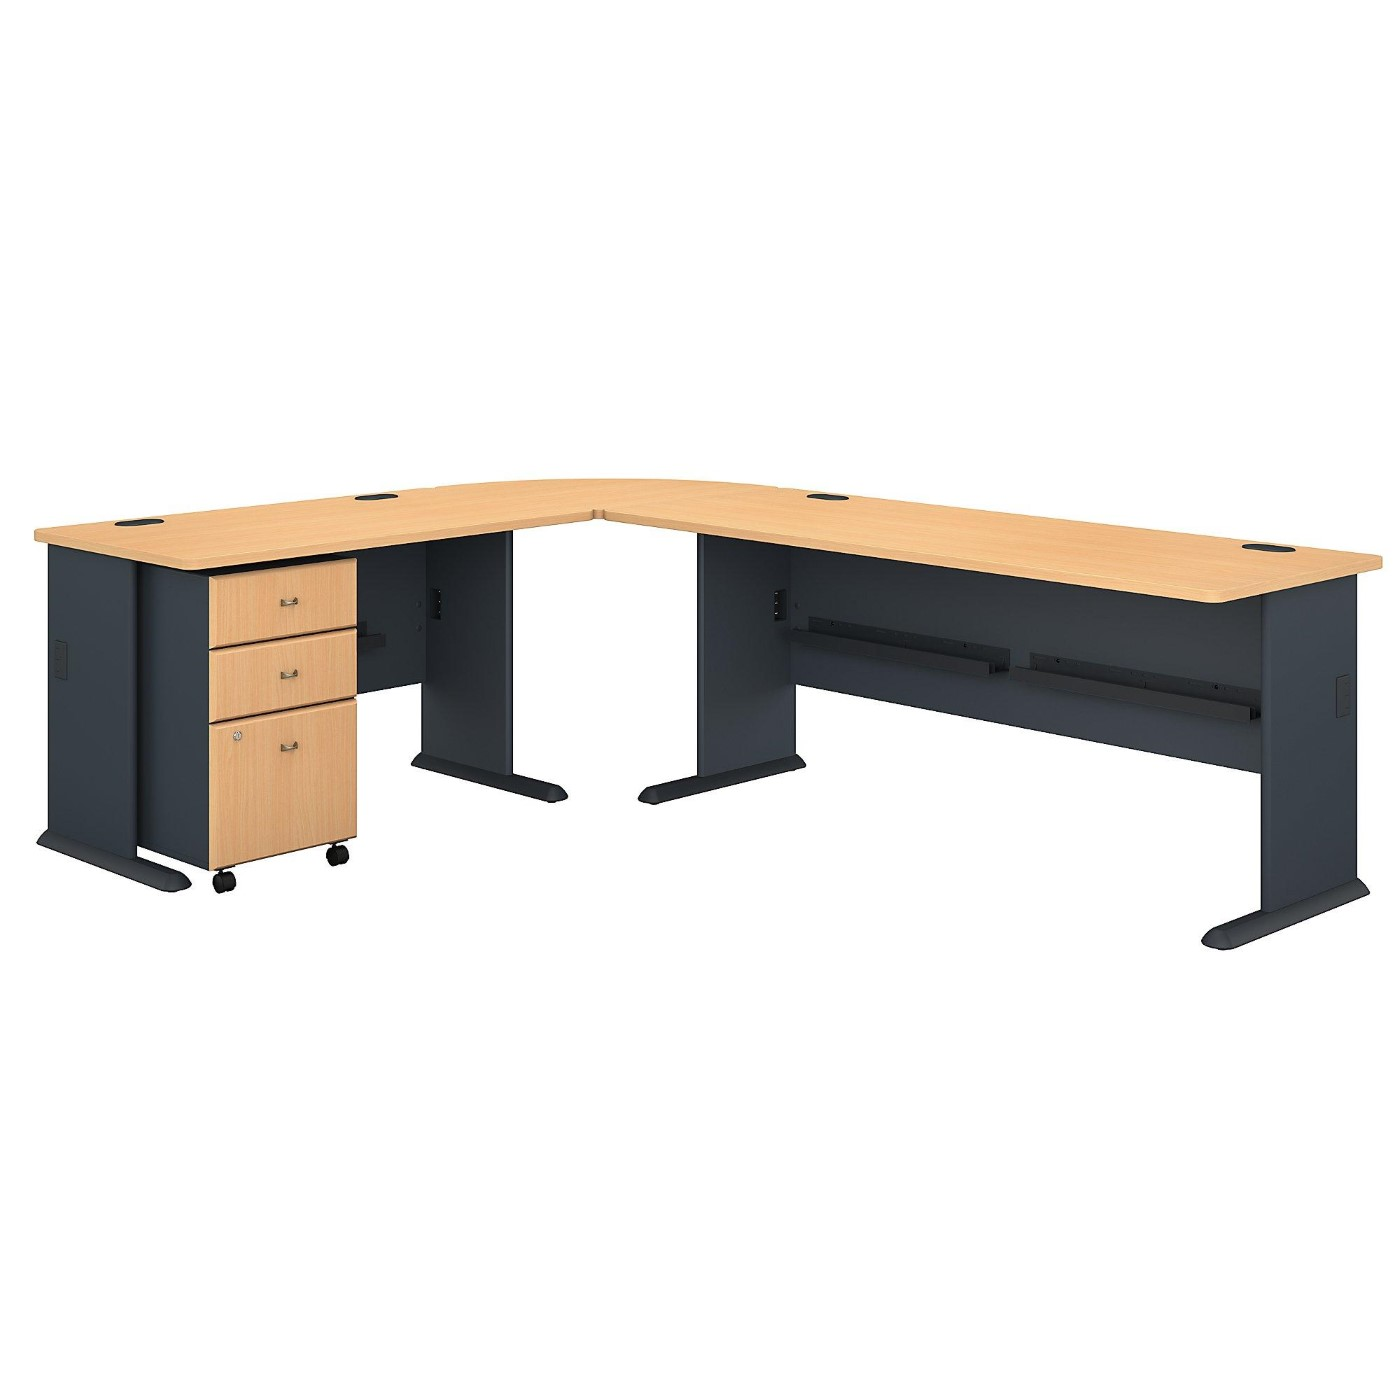 BUSH BUSINESS FURNITURE SERIES A 99W X 75D L SHAPED DESK WITH MOBILE FILE CABINET. FREE SHIPPING</font></b></font></b>&#x1F384<font color=red><b>ERGONOMICHOME HOLIDAY SALE - ENDS DEC. 17, 2019</b></font>&#x1F384